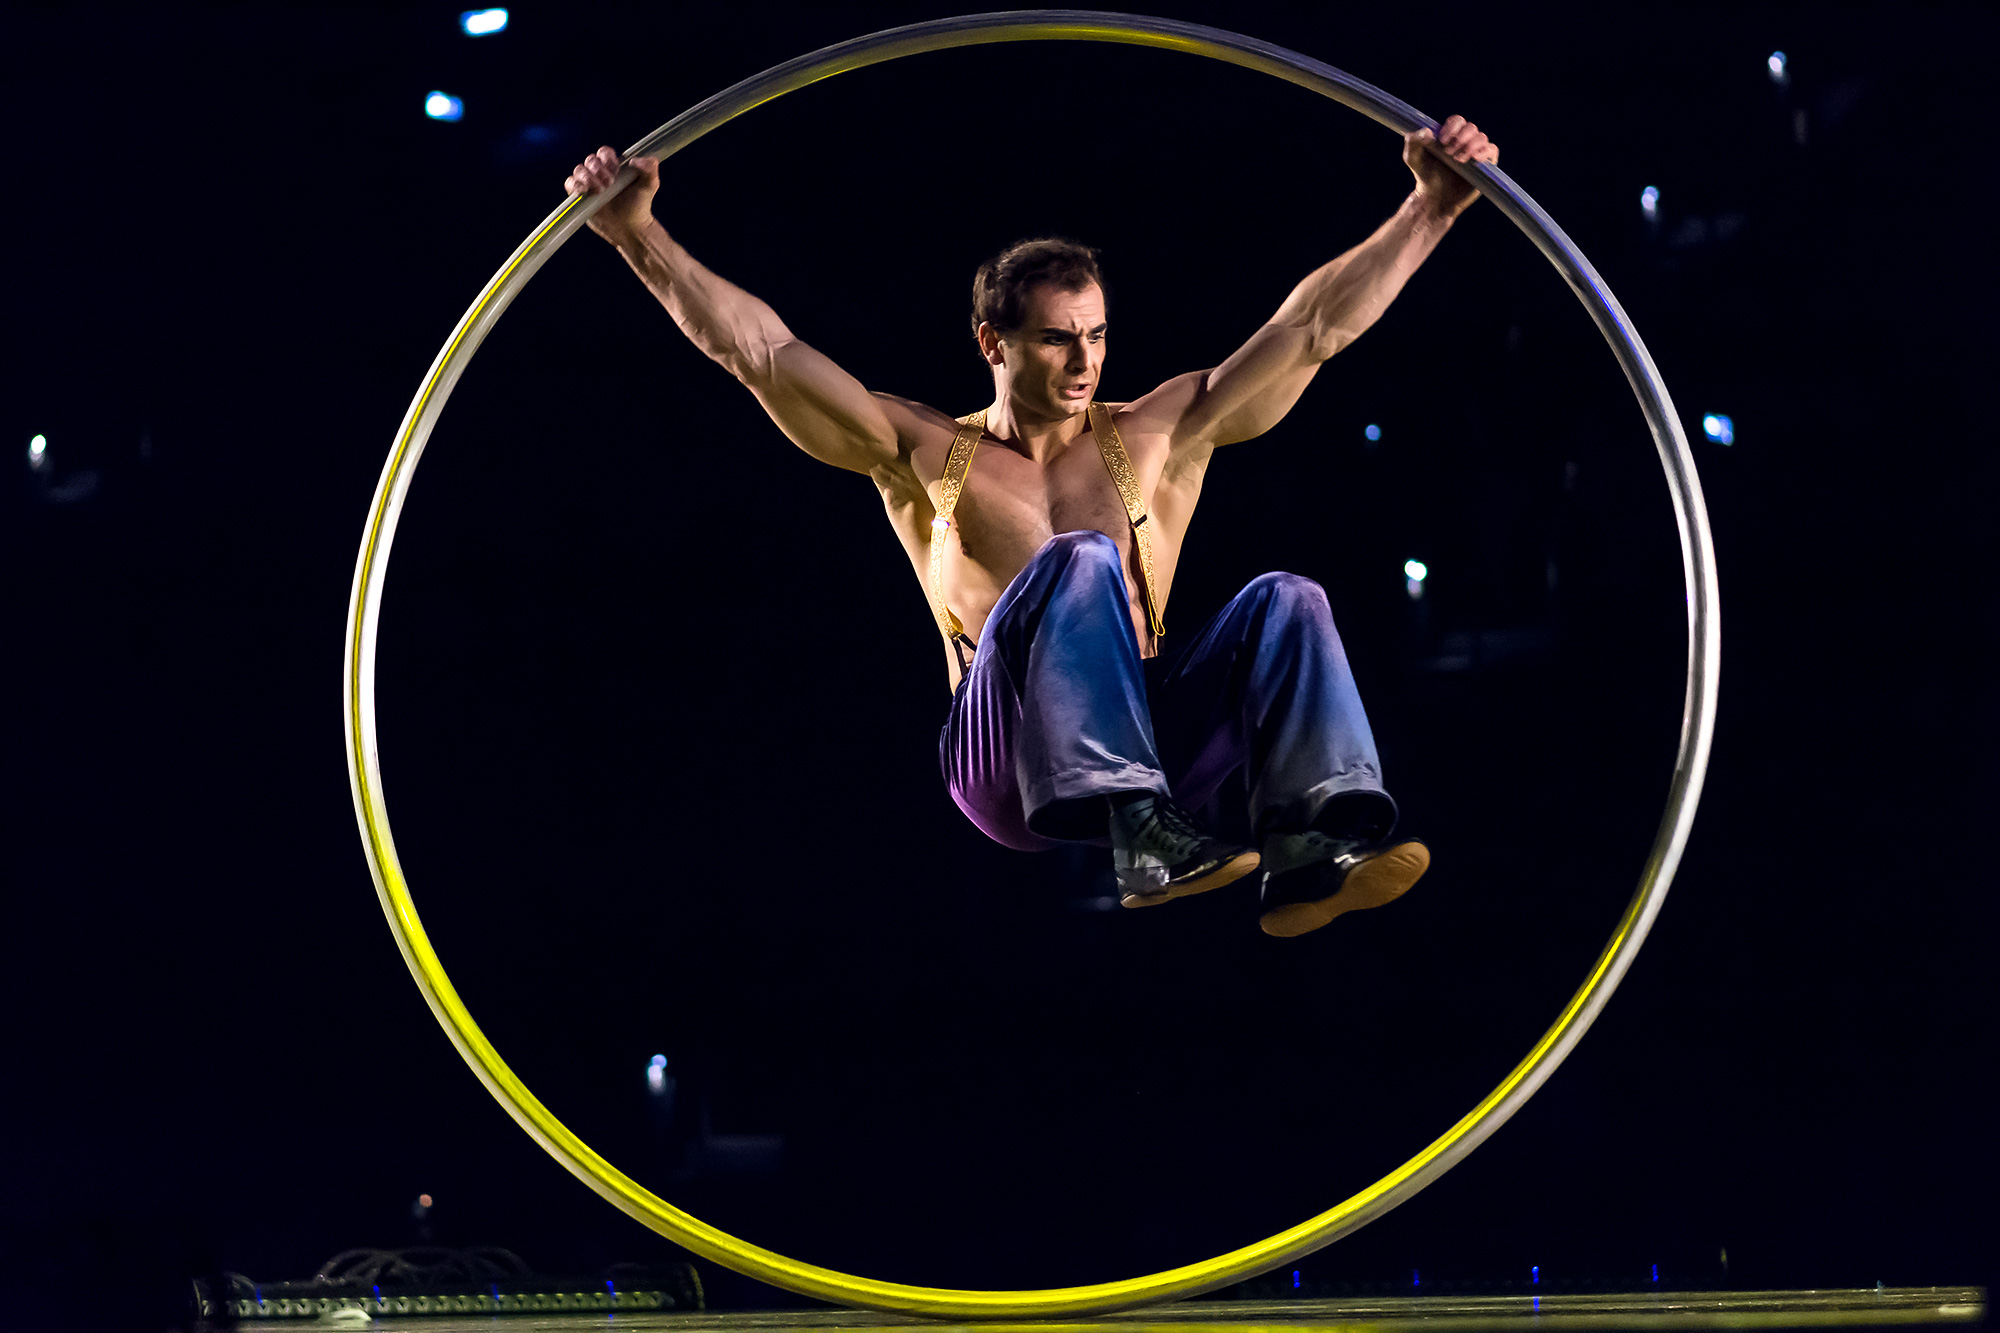 Cyr Wheel Costumes Dominique Lemieux 2018 Cirque du Soleil Photo 2